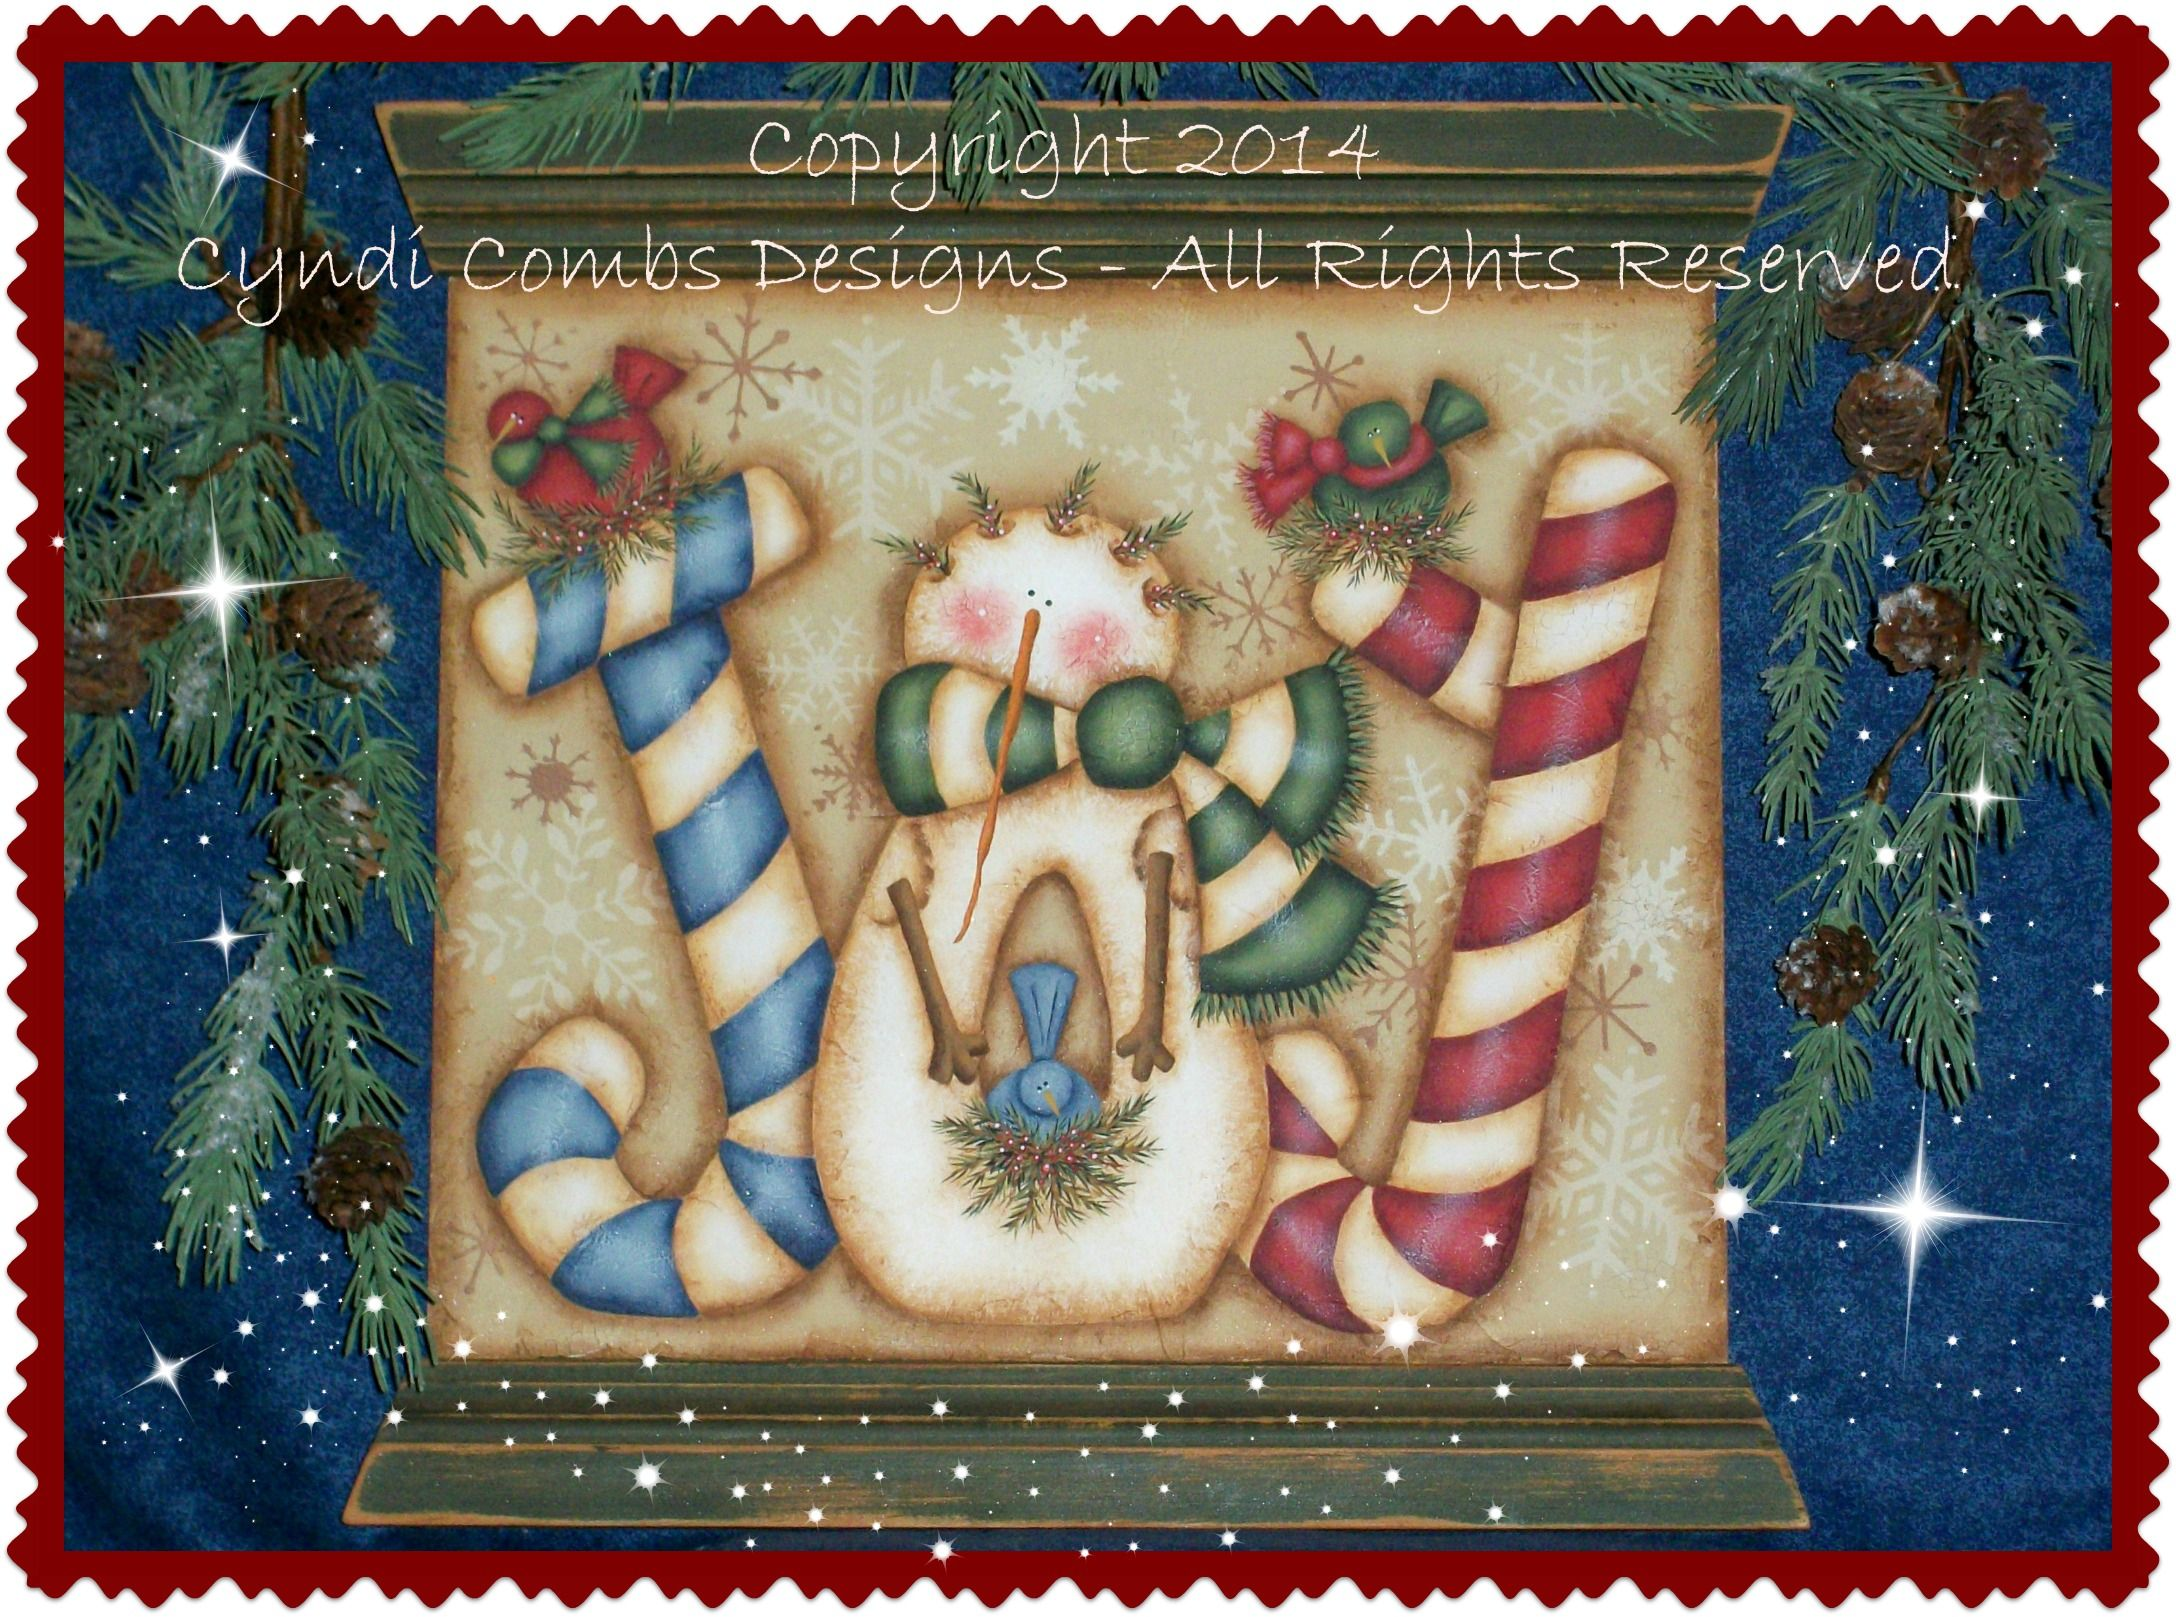 Joy Snowie Painting E Pattern by Cyndi Combs Designs Available from: https://www.etsy.com/listing/199186128/cc173-joy-snowie-painting-e-pattern?ref=shop_home_active_1&ga_search_query=173